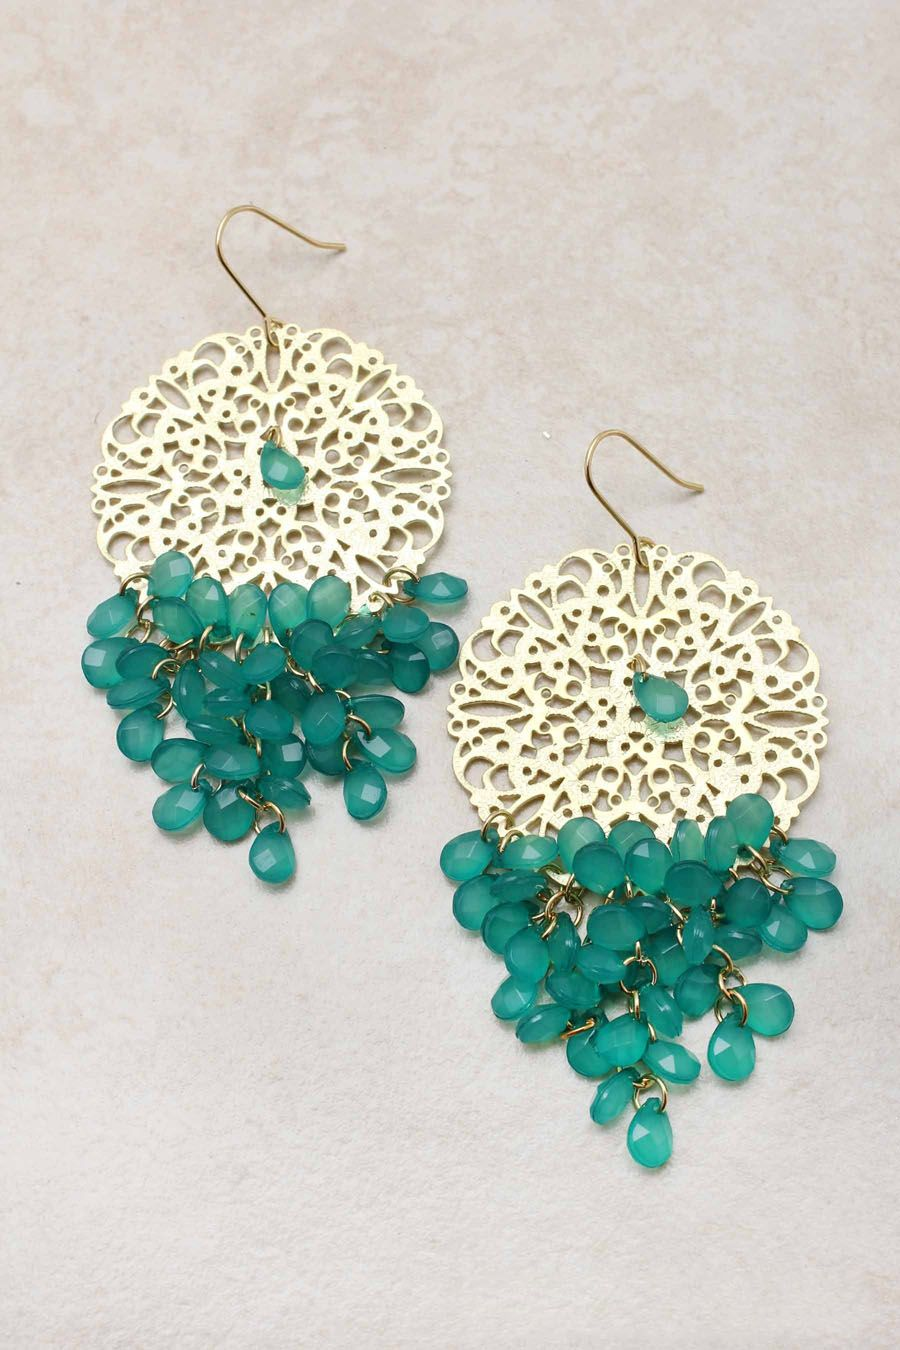 Paris green manuella chandelier earrings emma stine jewelry boho chic with a touch of dreamy delicacy faceted cut teardrops suspended in chandelier clusters from a golden laser cut filigree mozeypictures Image collections